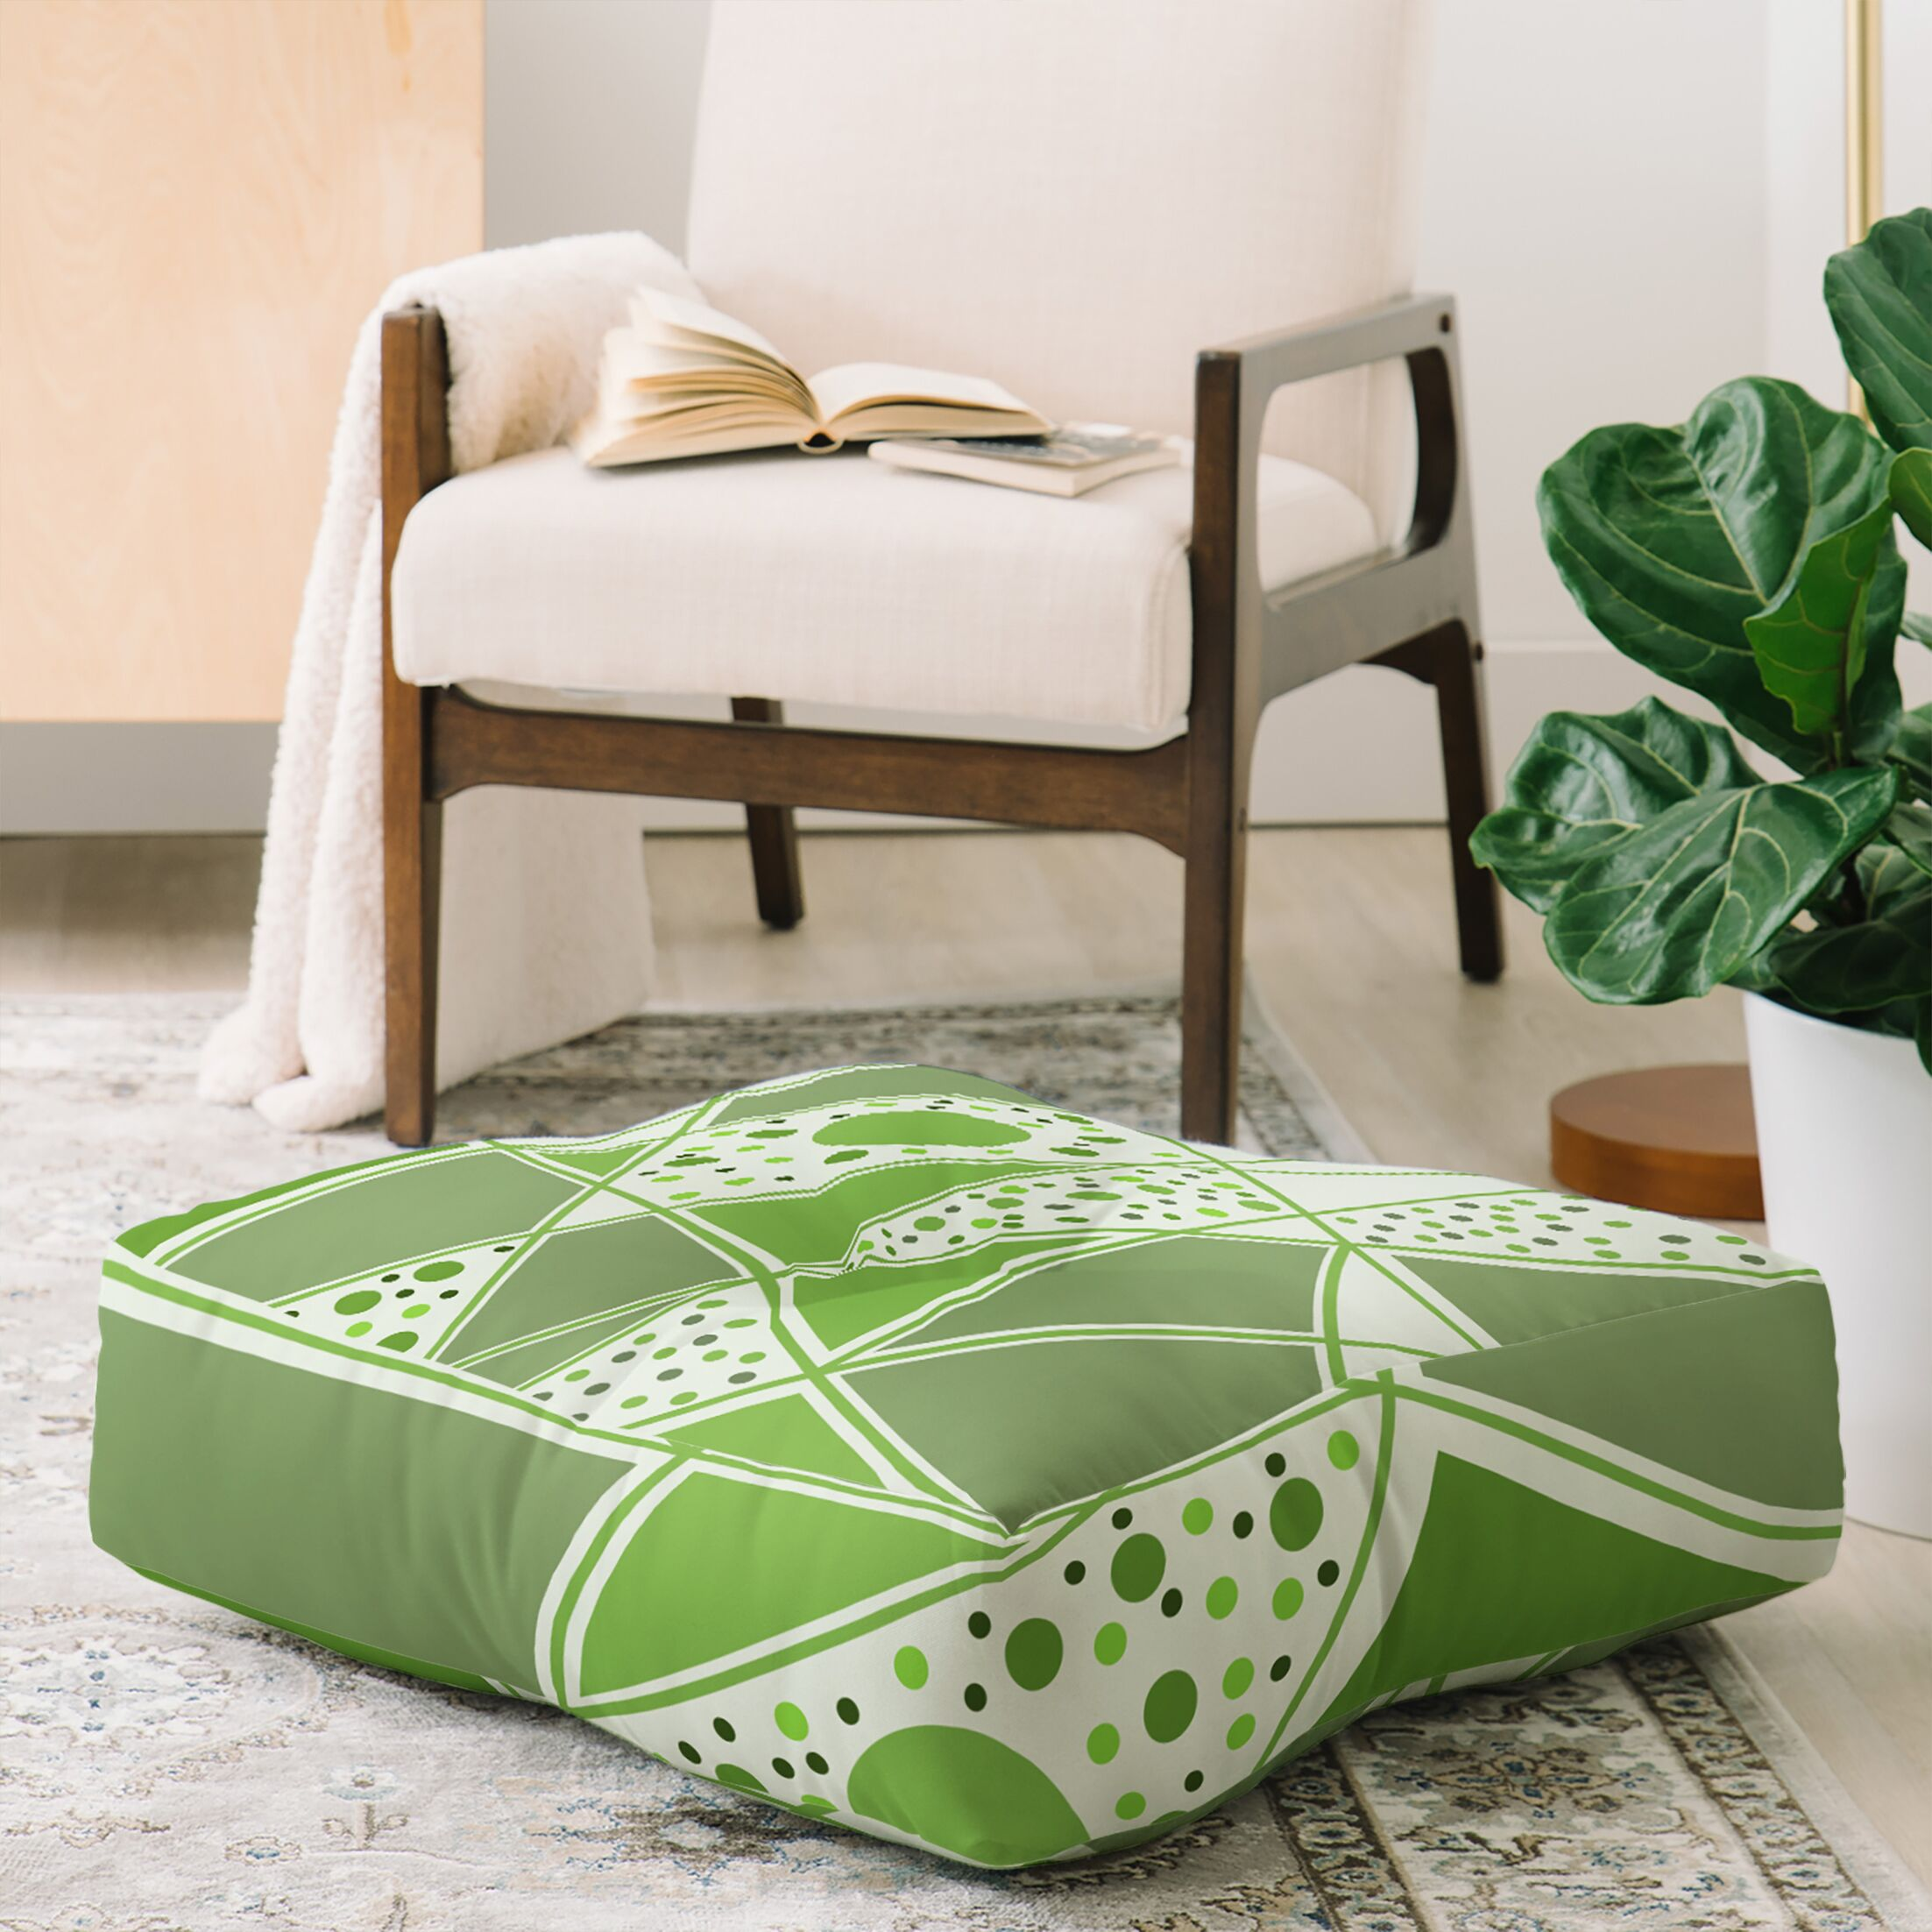 Viviana Gonzalez Sensation Floor Pillow